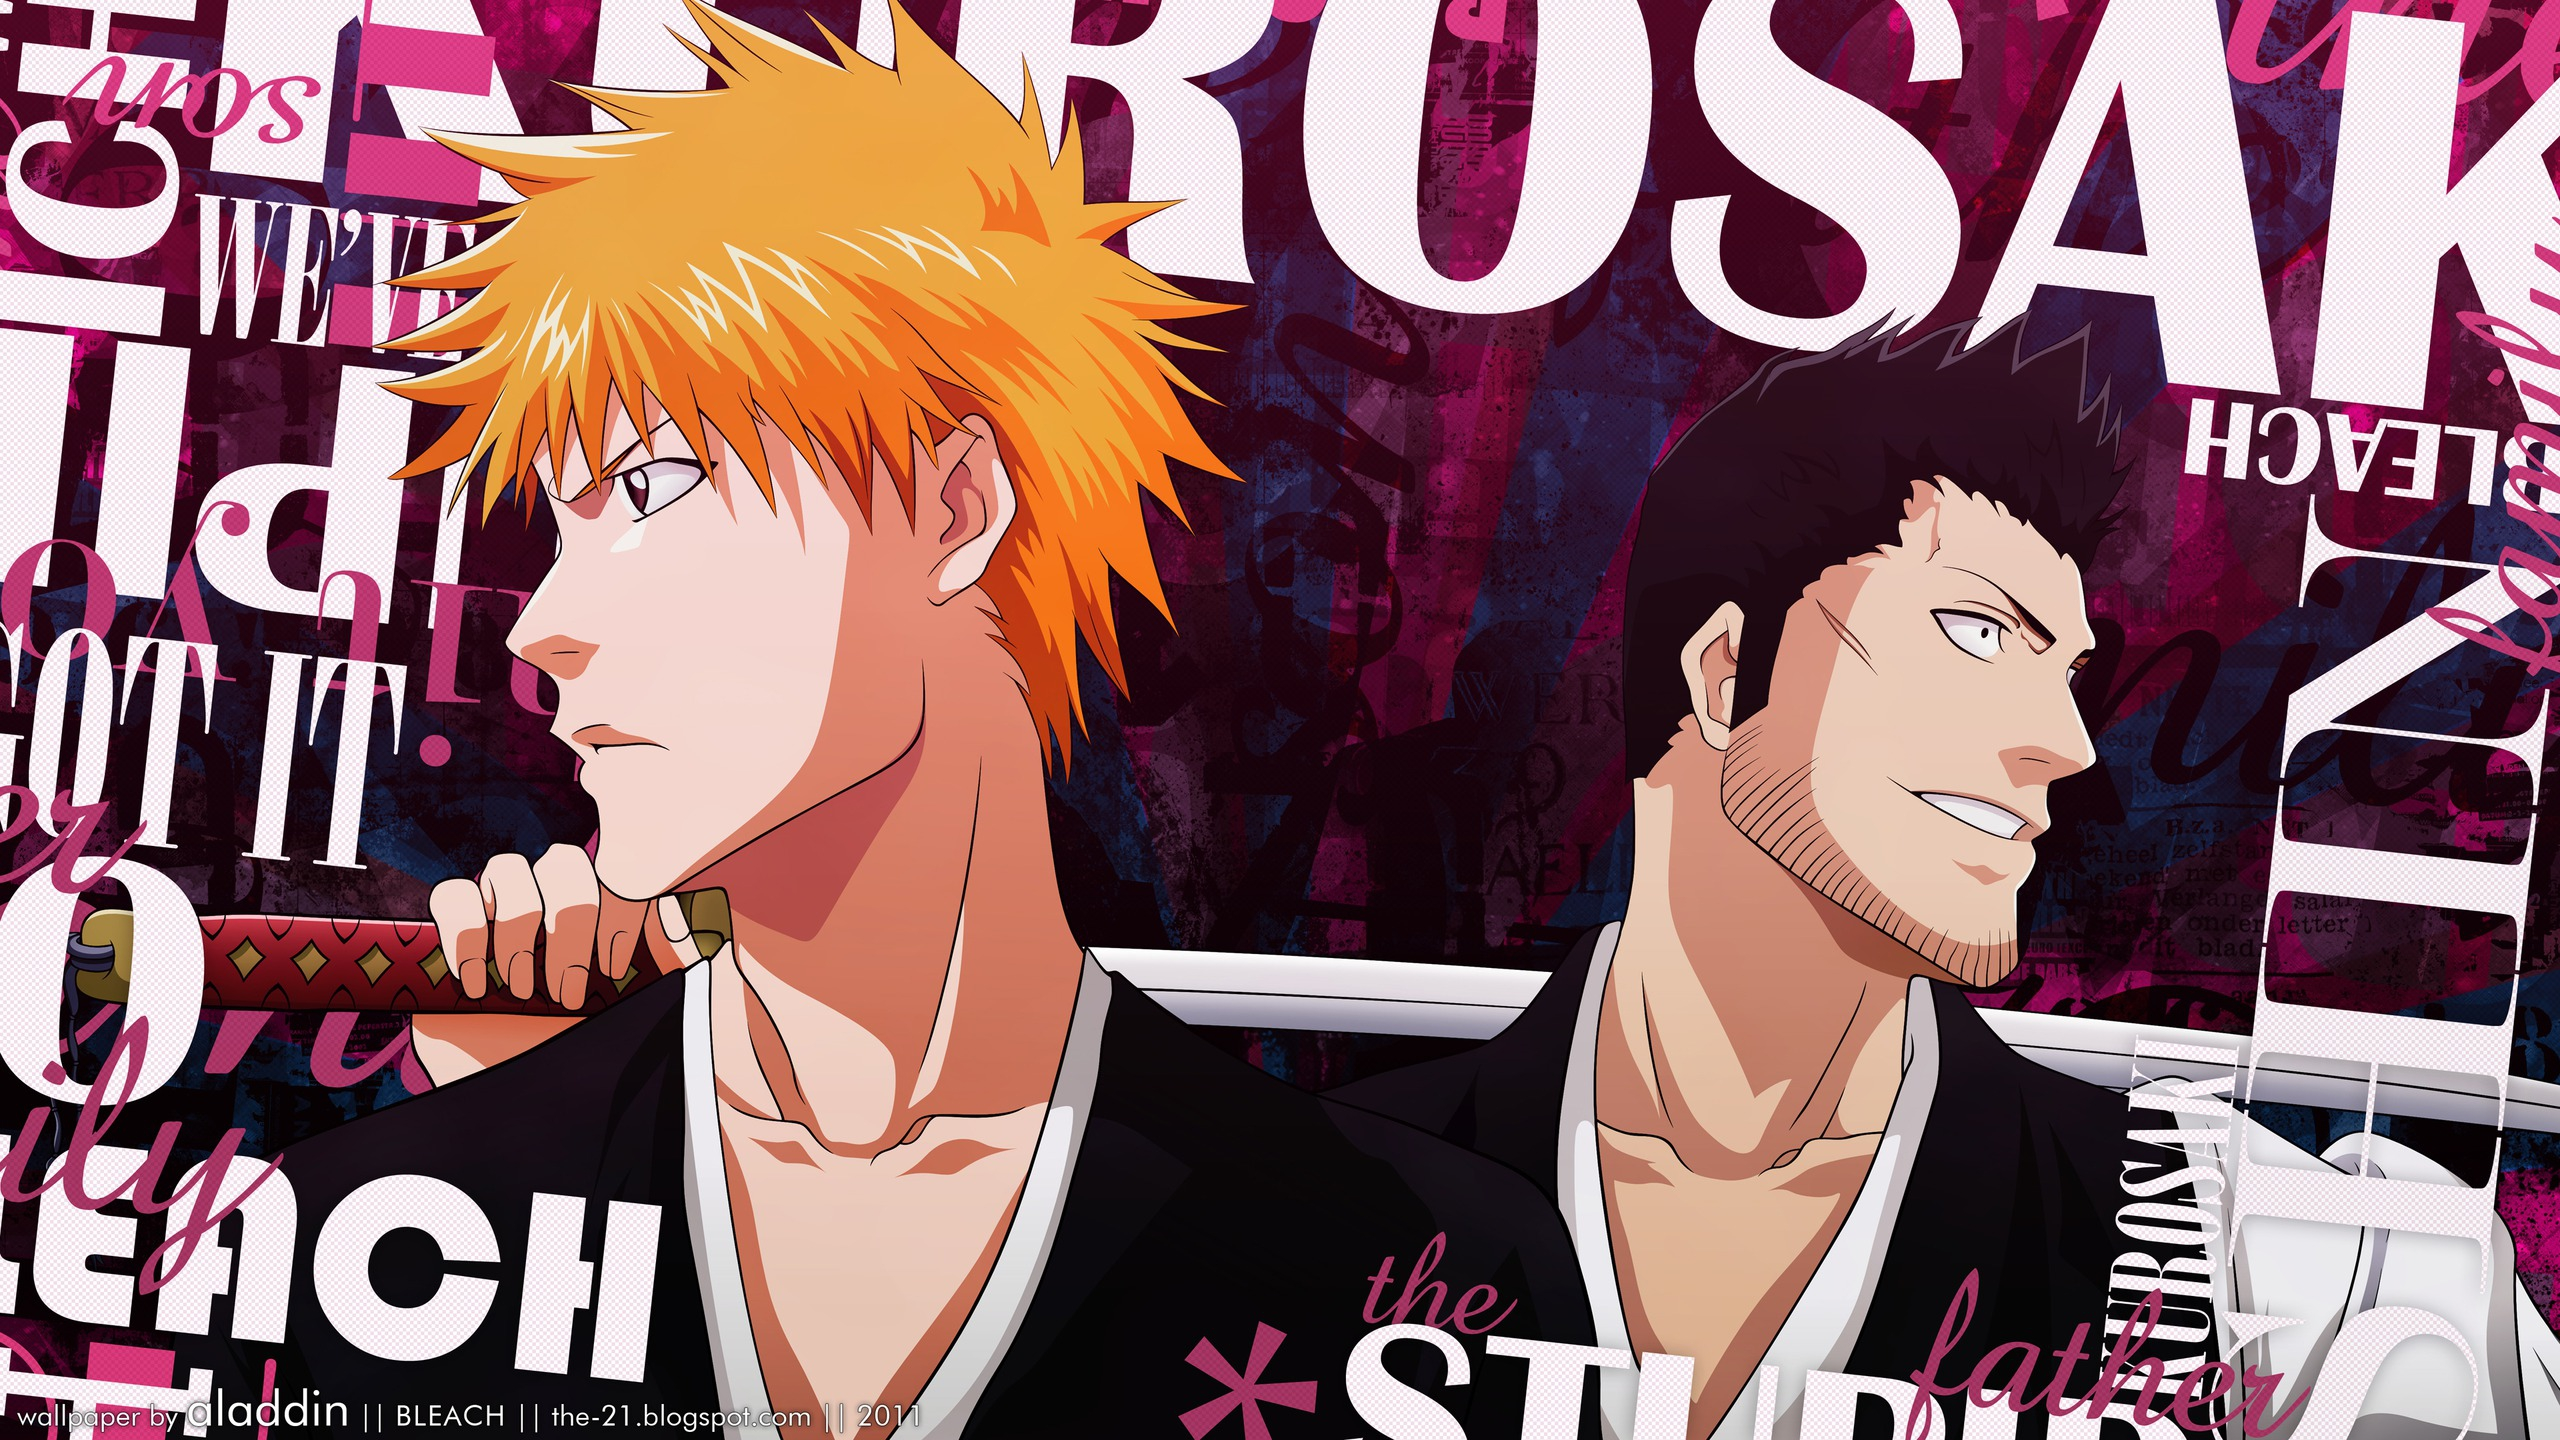 Related to watch bleach episodes english subbed amp dubbed movies online